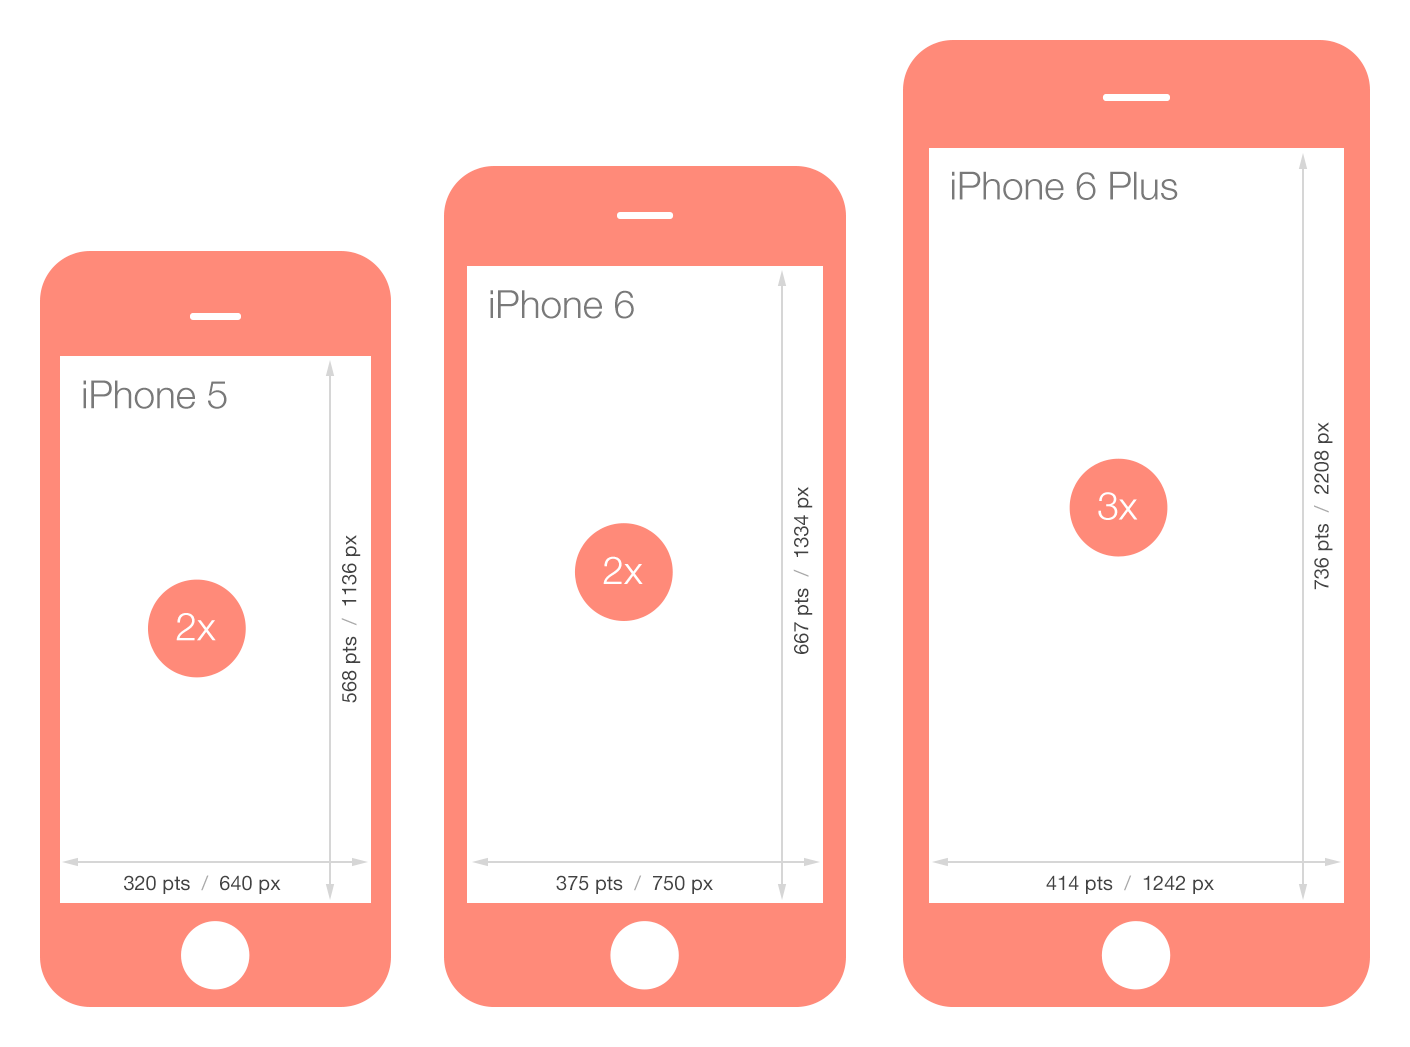 iphone 5s screen size inches designing for the new iphone 6 screen resolutions createful 6326